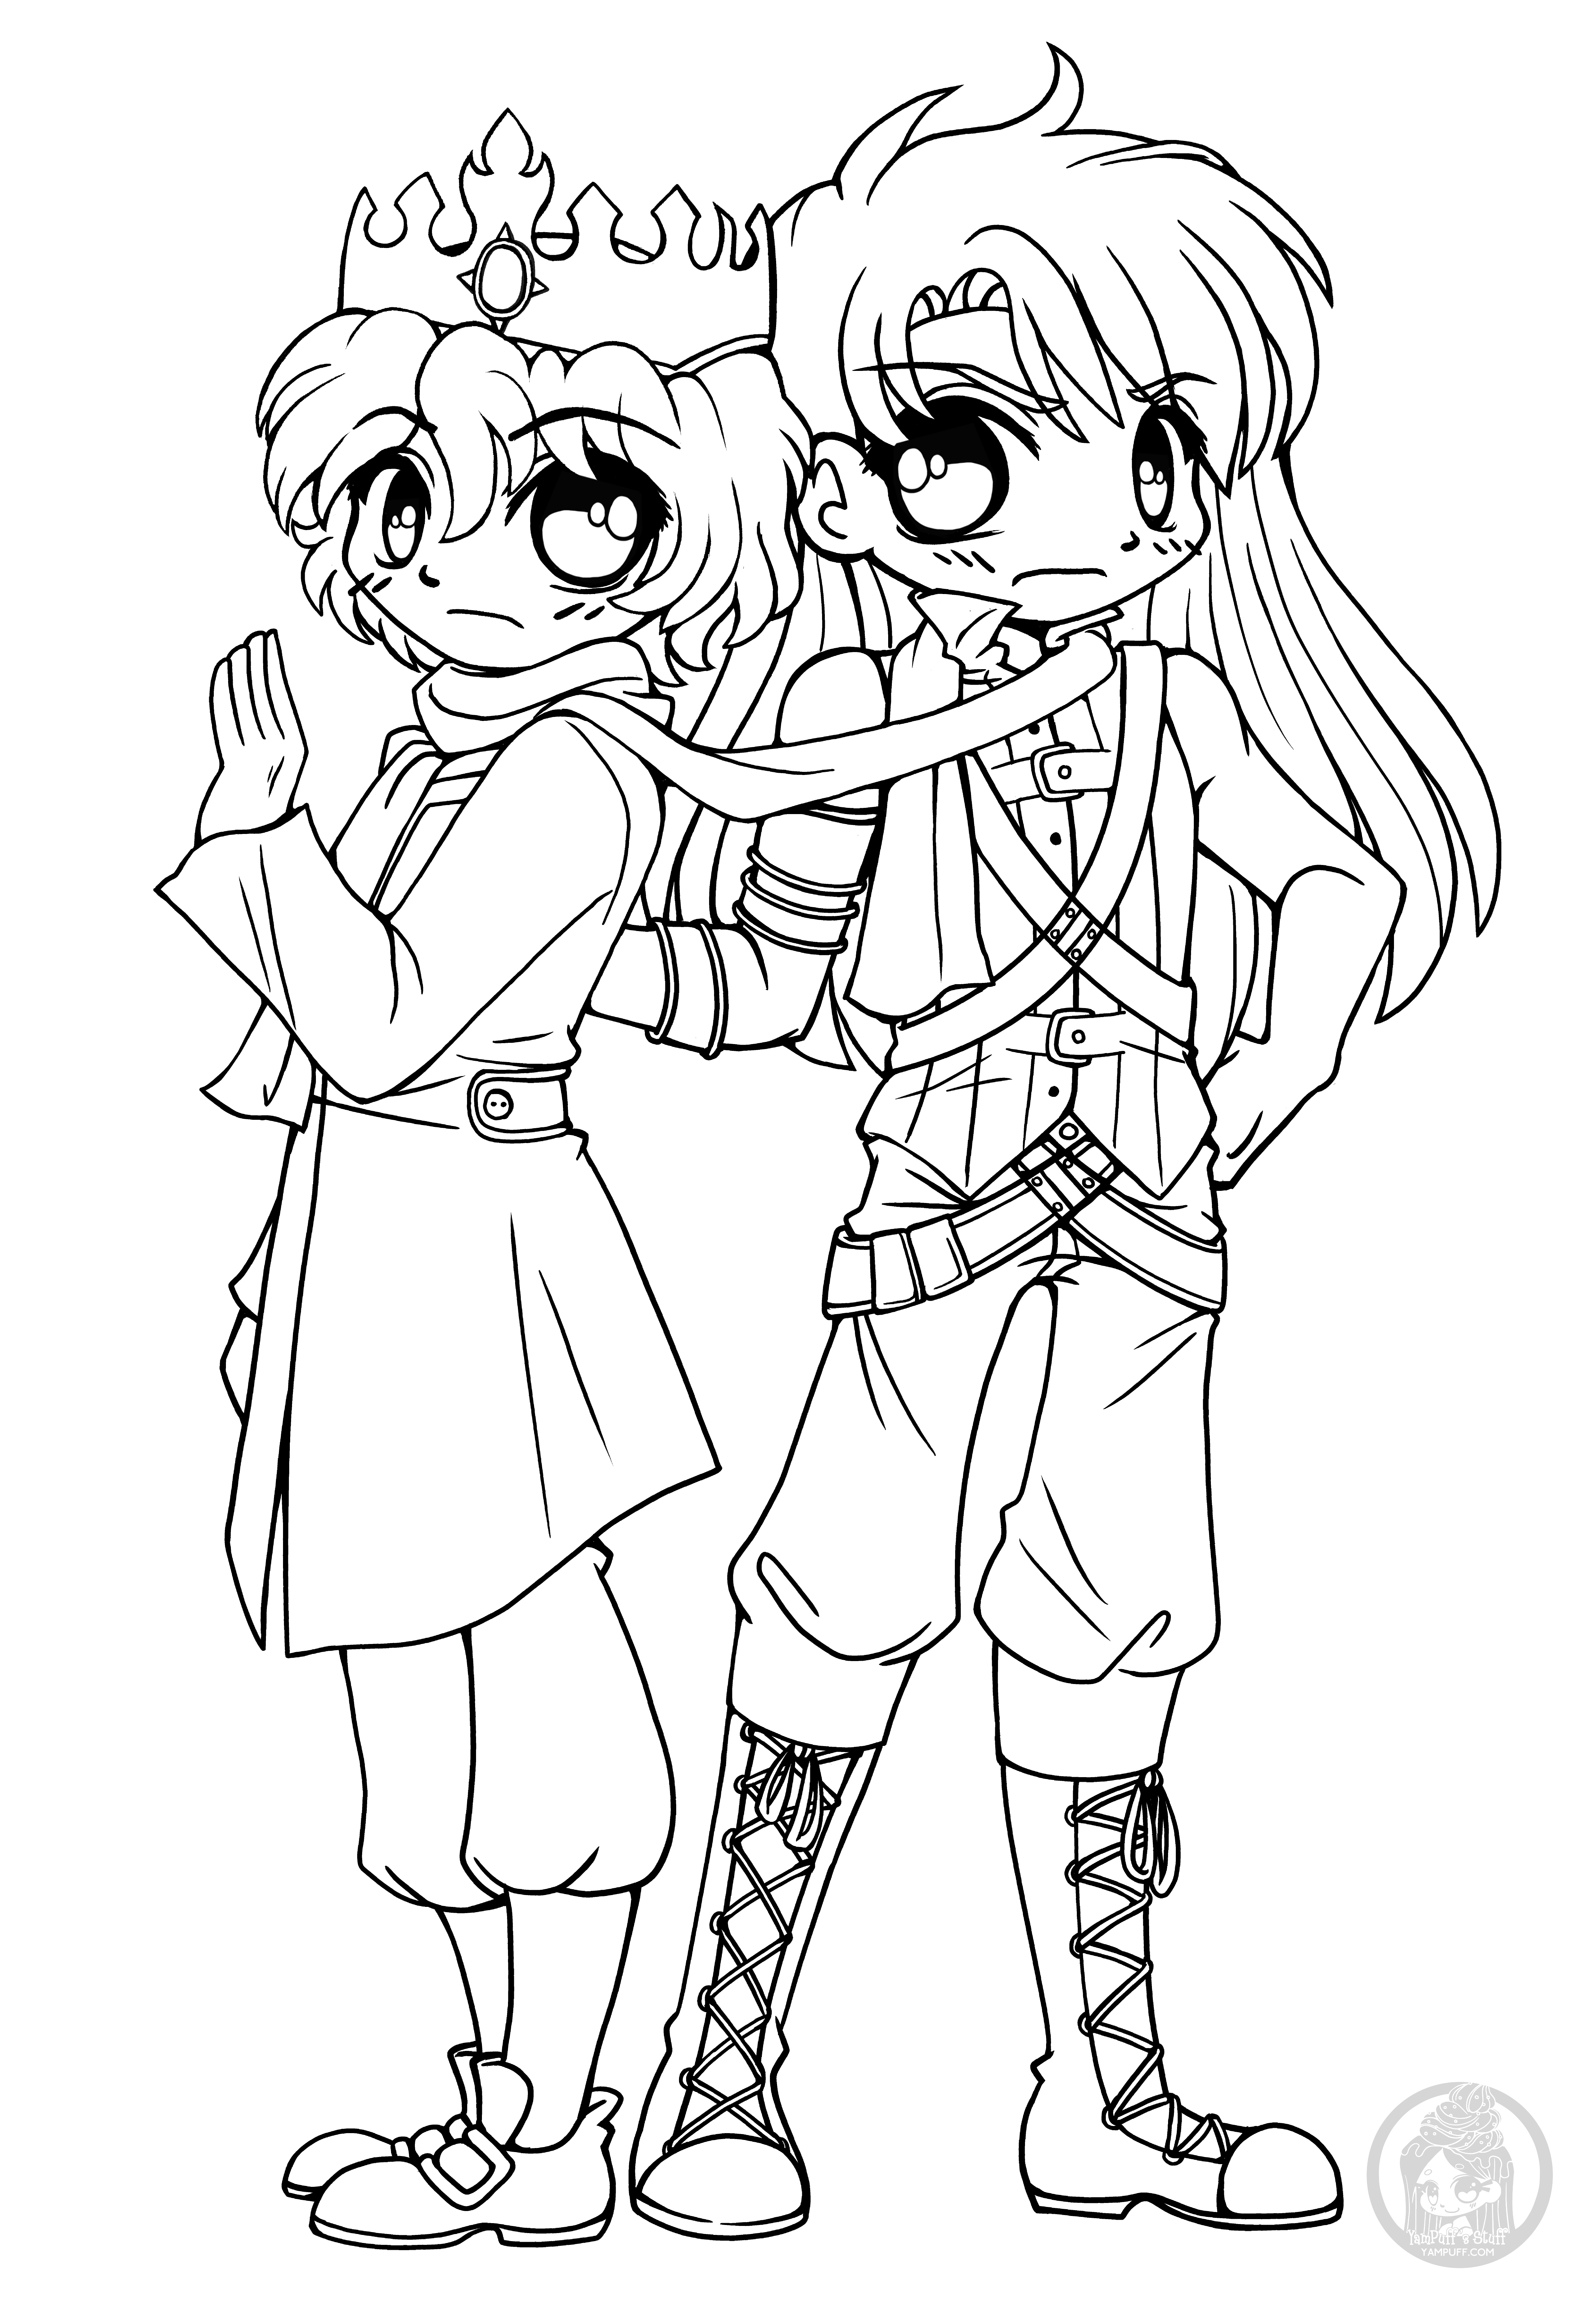 chibi couple coloring pages cute chibi couple drawing at getdrawings free download coloring couple pages chibi